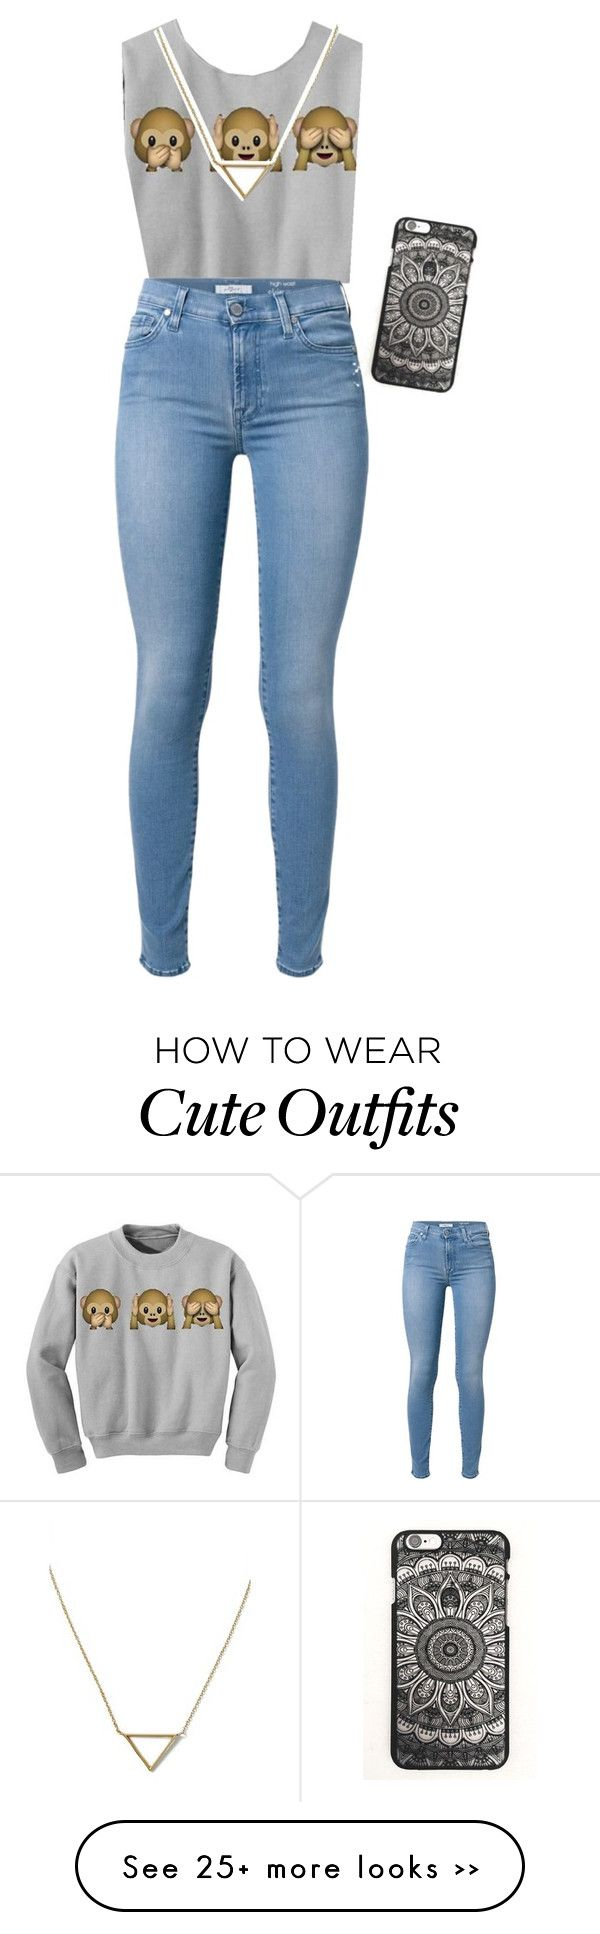 """A school outfit that's got style"" by annafiamingo on Polyvore featuring 7 For All Mankind and Banana Republic"